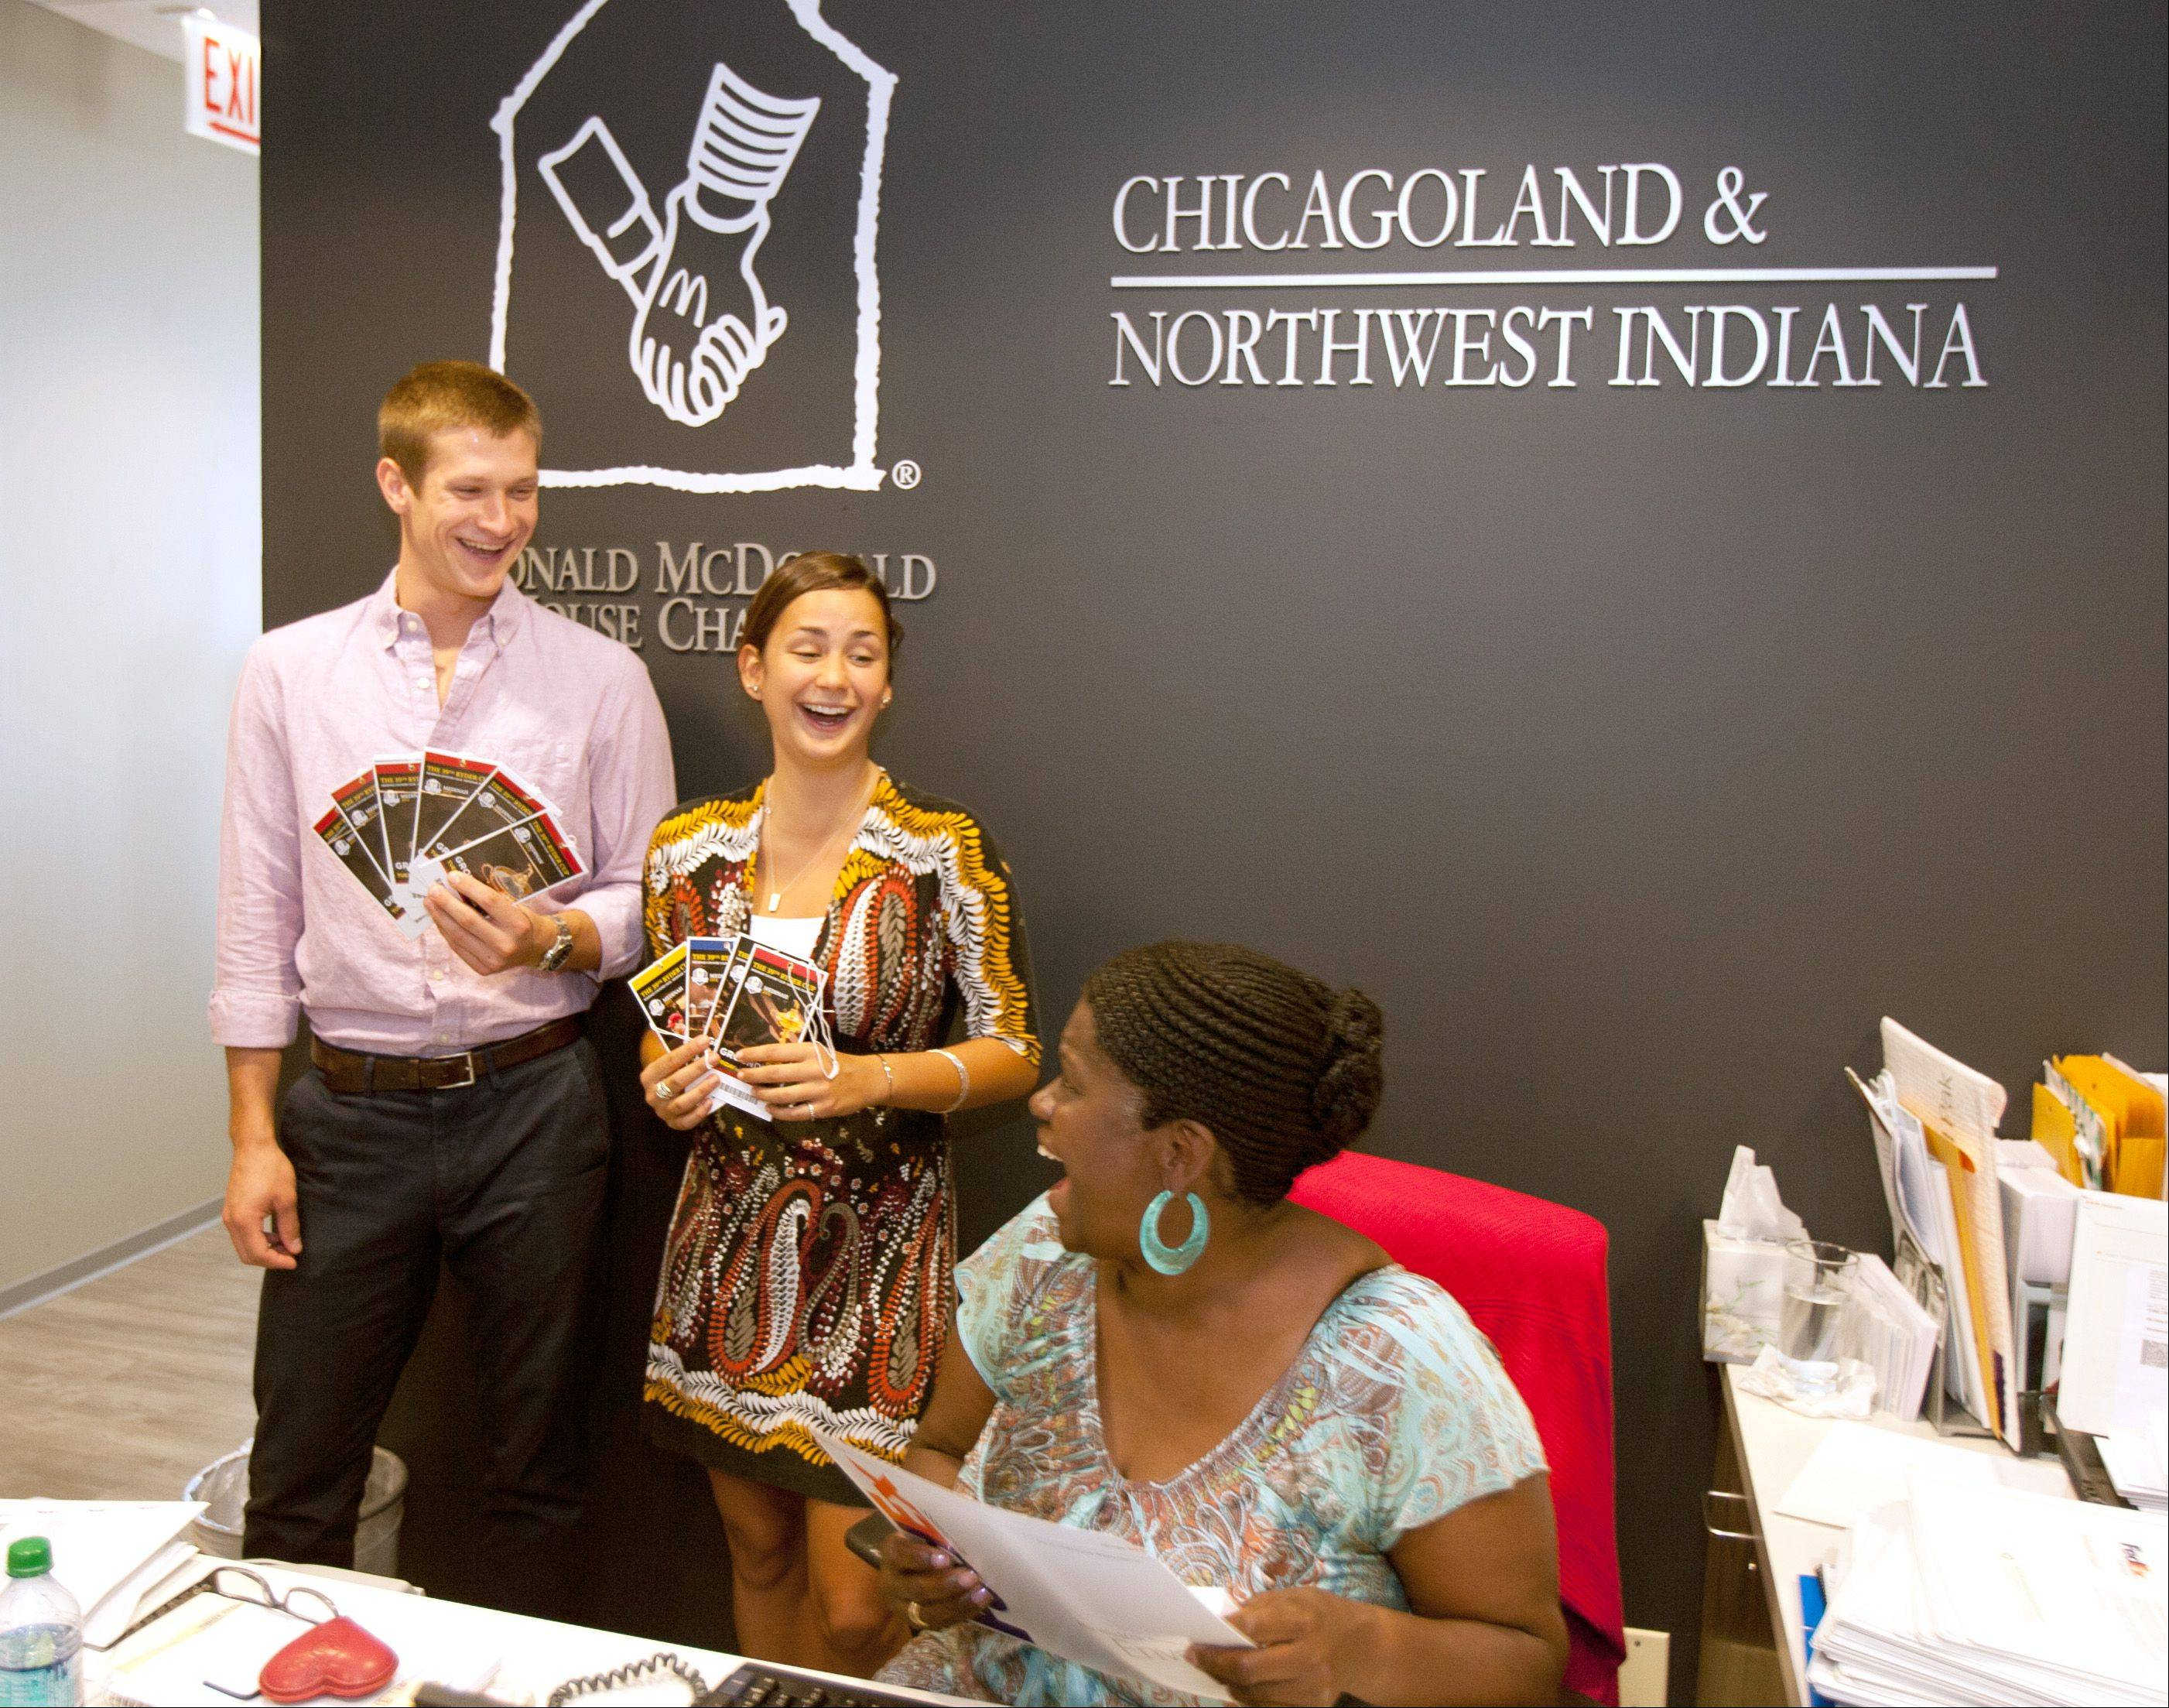 Ronald McDonald charities office Intern Matt Patterson and Development Coordinator Alexa Norberg, center, talk with Office Manager Annette Crouch at the Ronald McDonald charities office in Oak Brook. They are packaging tickets to the sold out Ryder Cup. Just prepare to plunk down a few extra bucks.